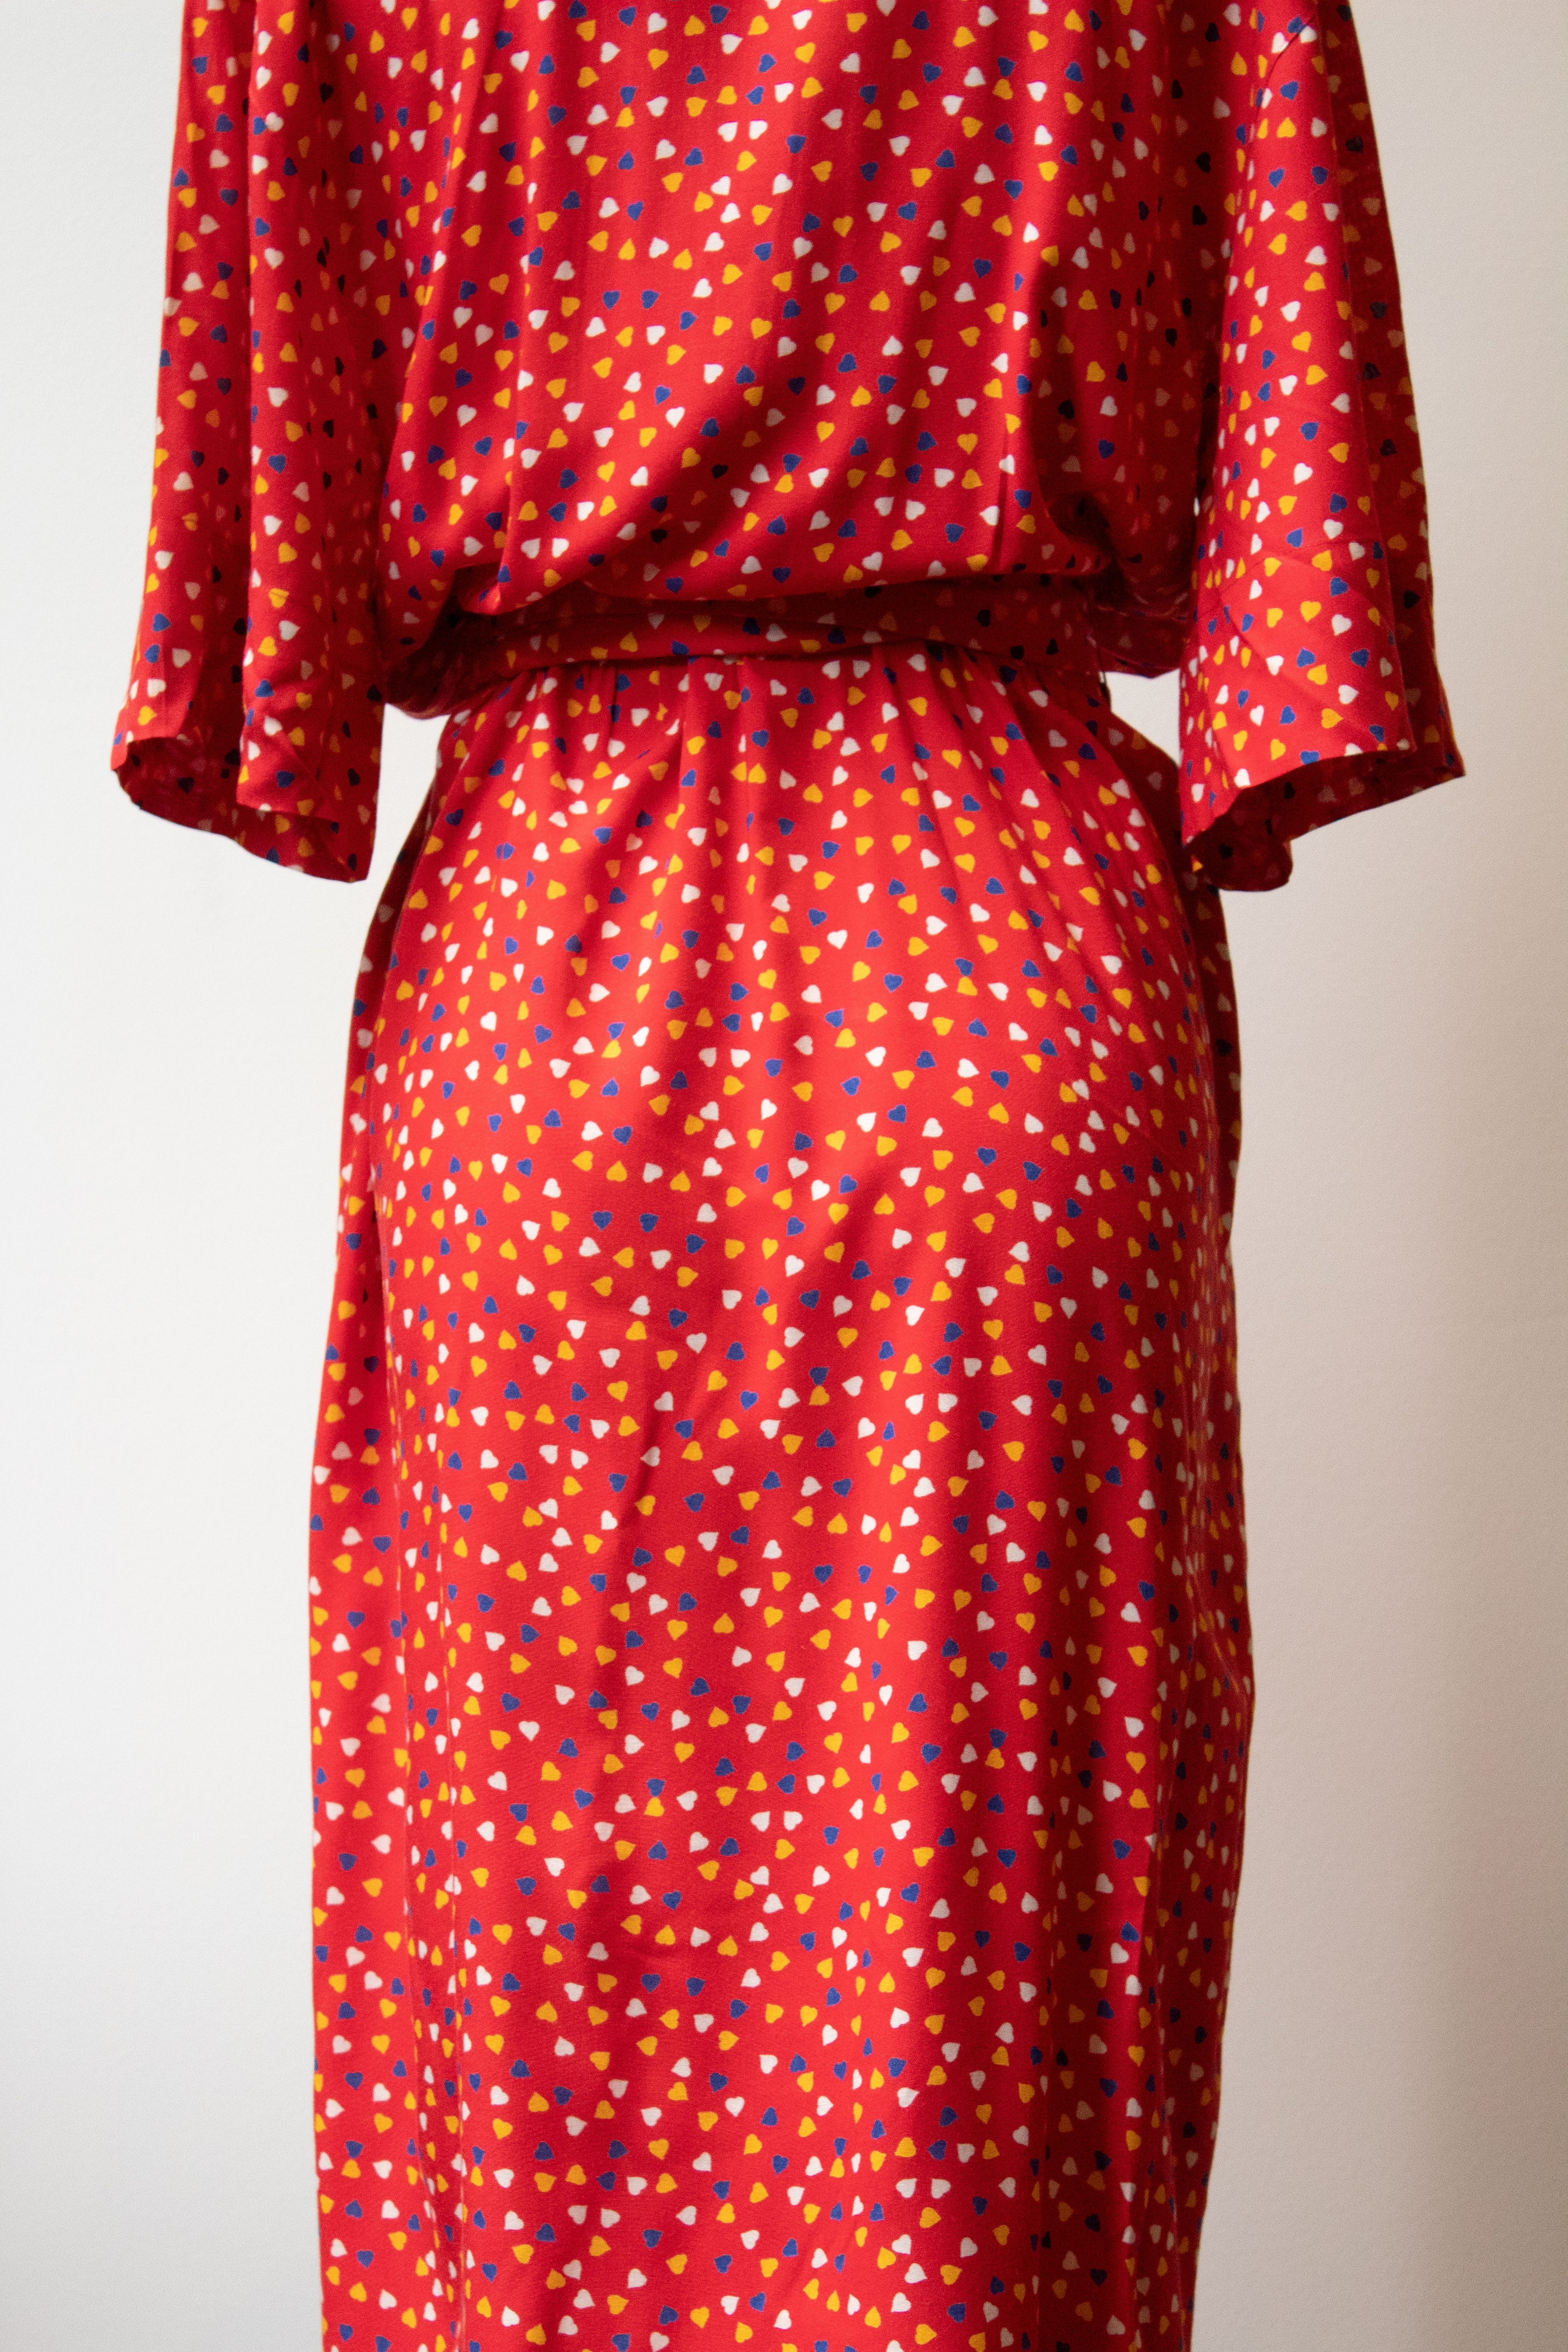 Guy Laroche red hearts printed shirt dress